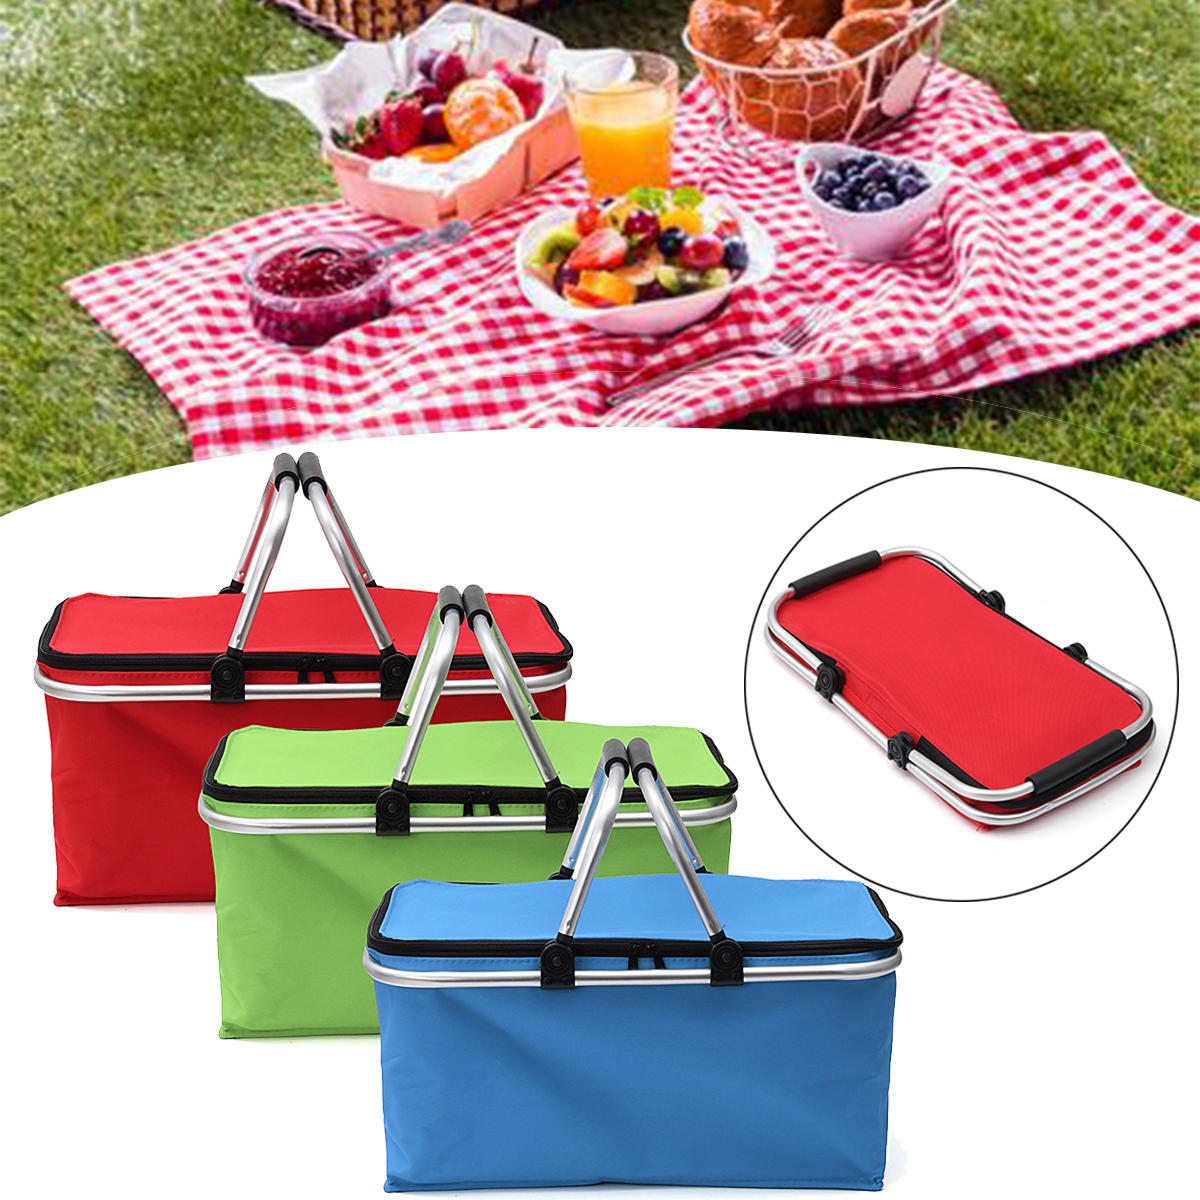 Large Folding Insulated Thermal Cooler Bag